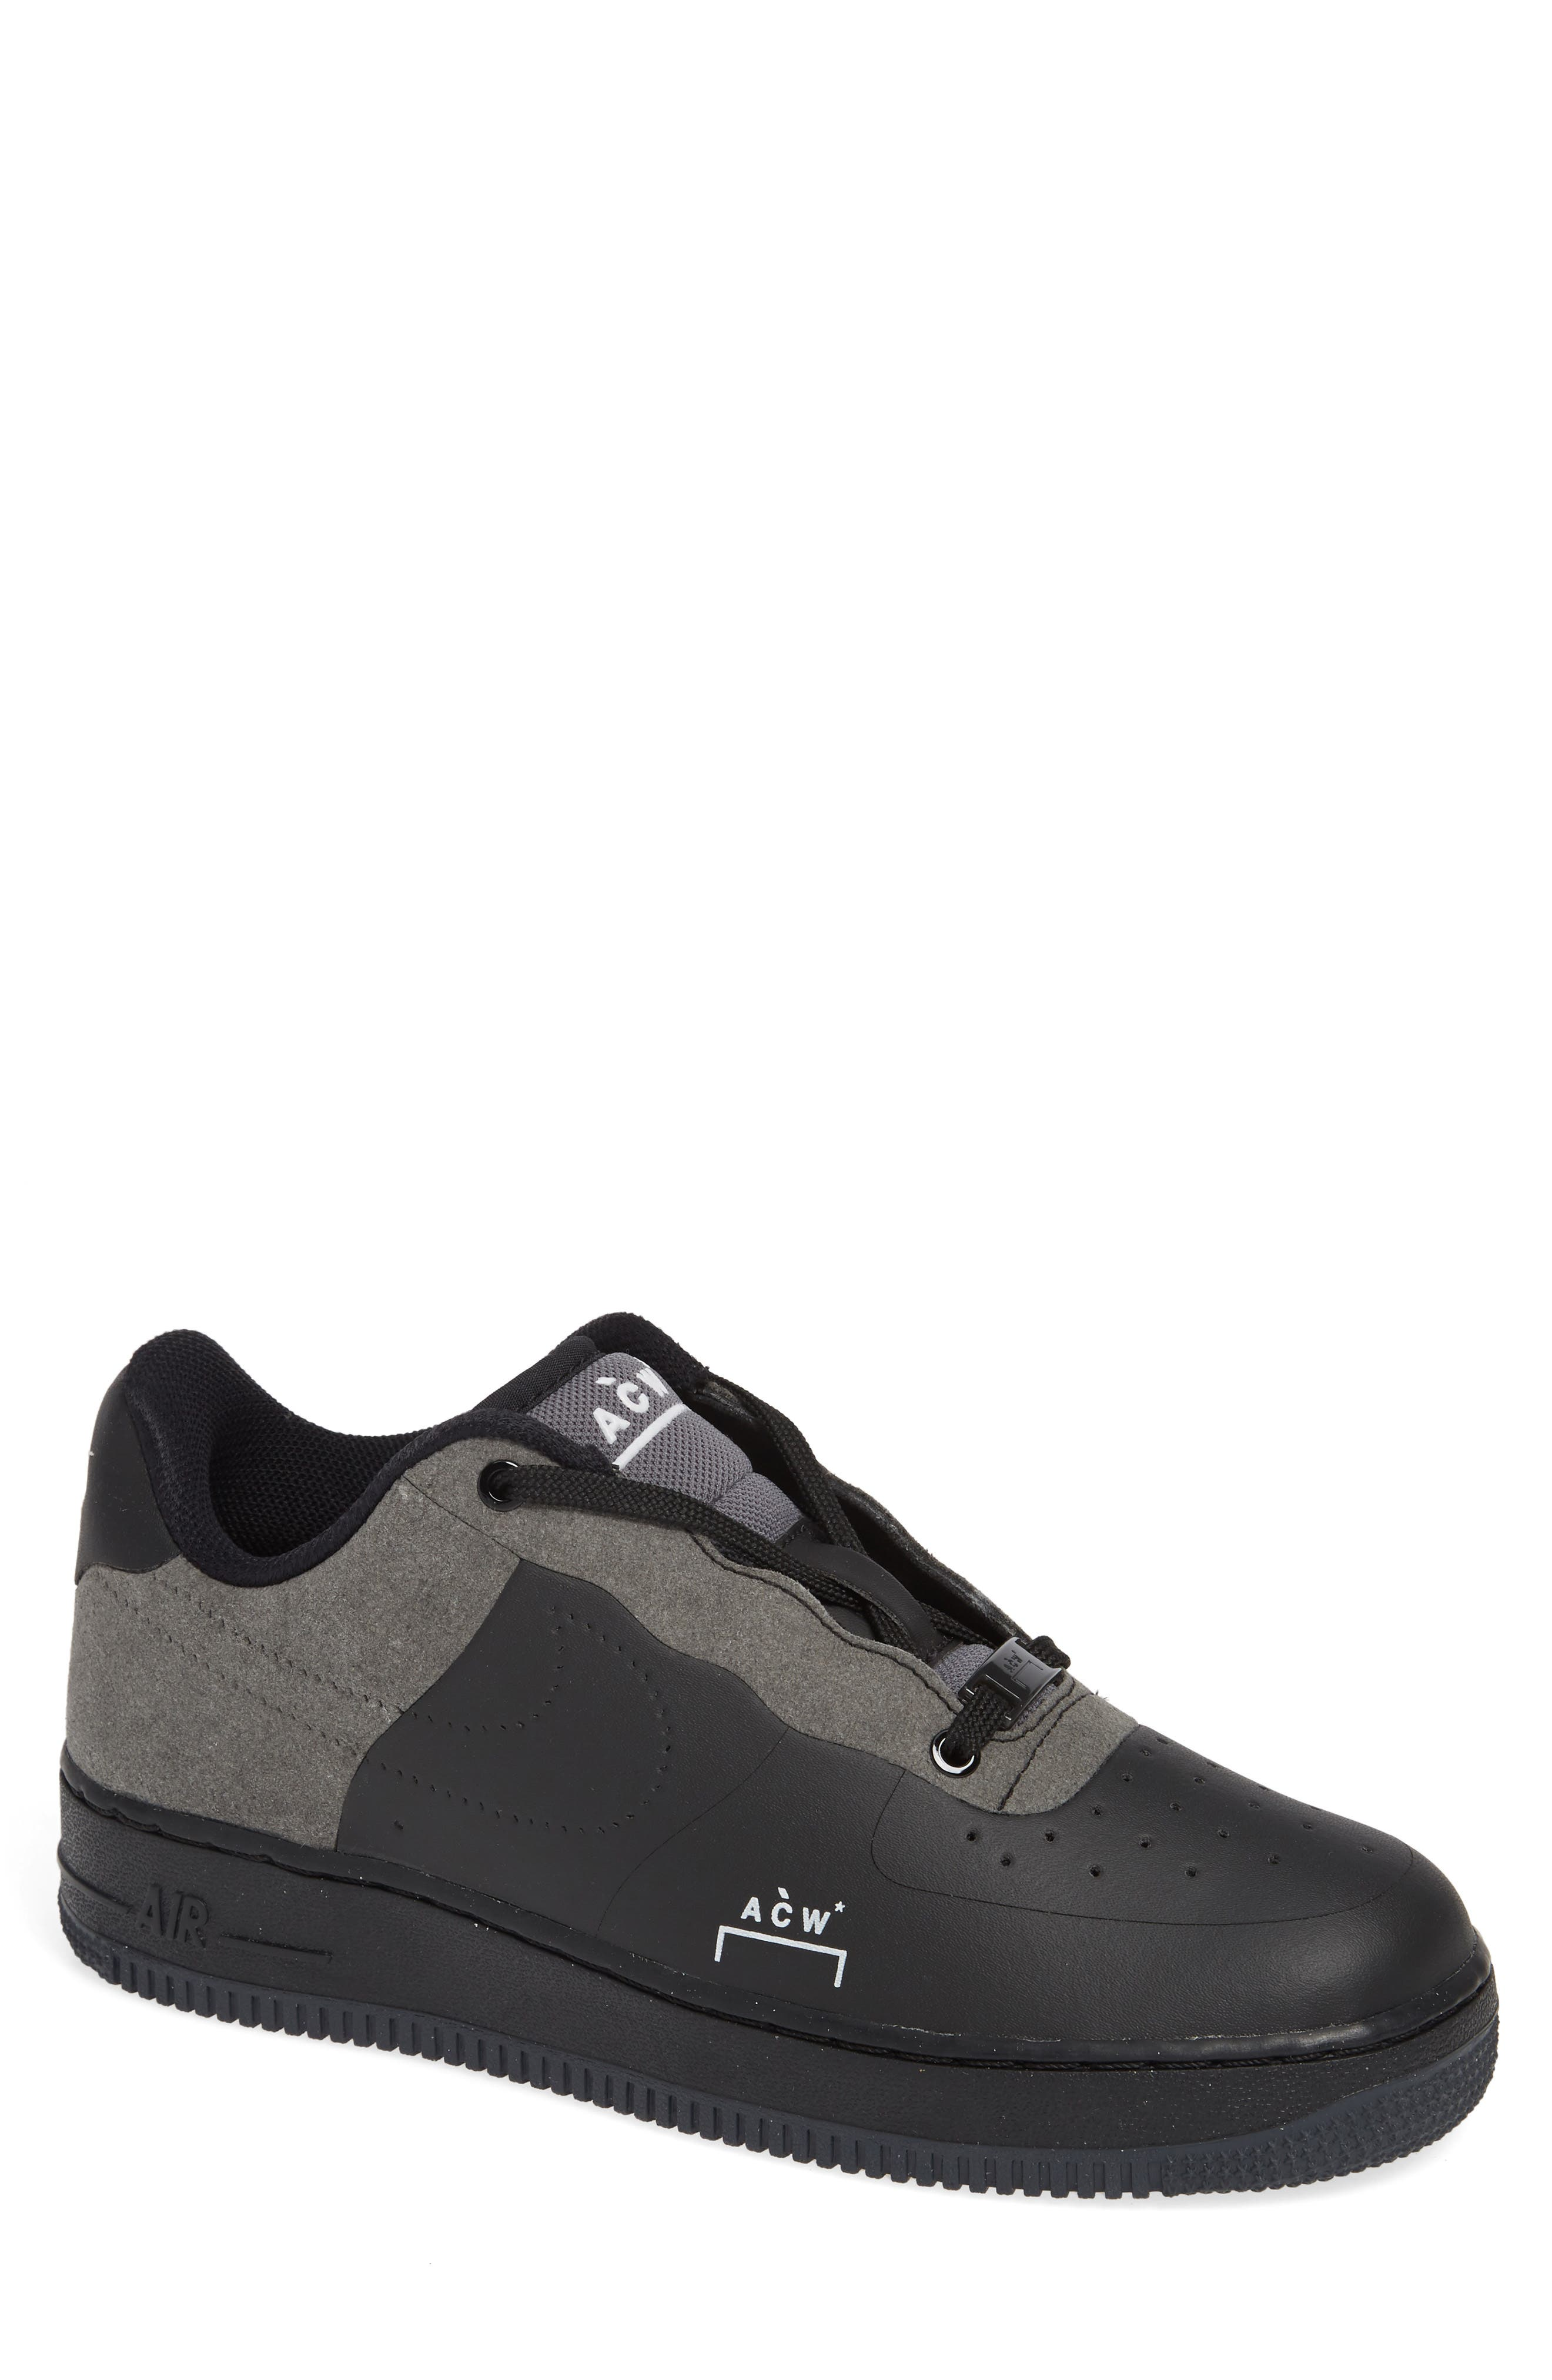 x A-COLD-WALL Air Force 1 '07 Sneaker, Main, color, BLACK/ WHITE/ DARK GREY